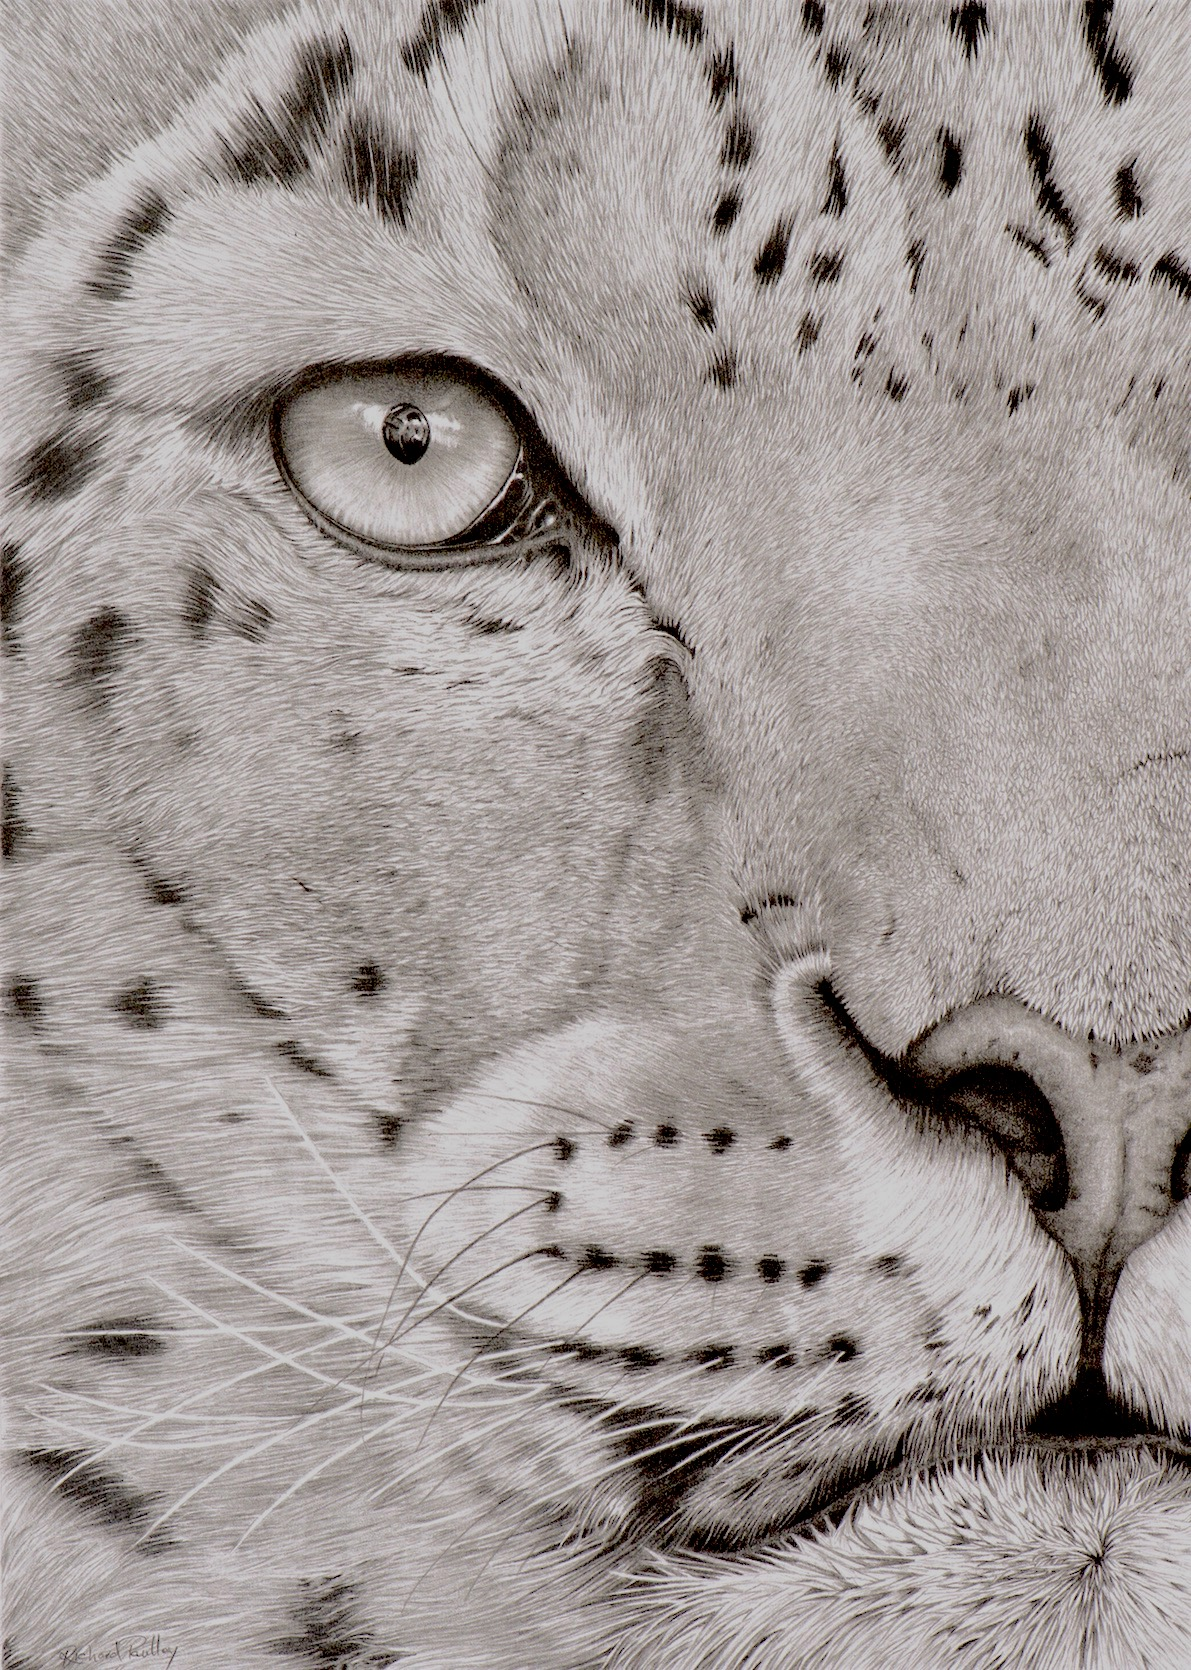 Snow Leopard By Richard Paulley - Graphite - Framed Original - 50x63cm - £350